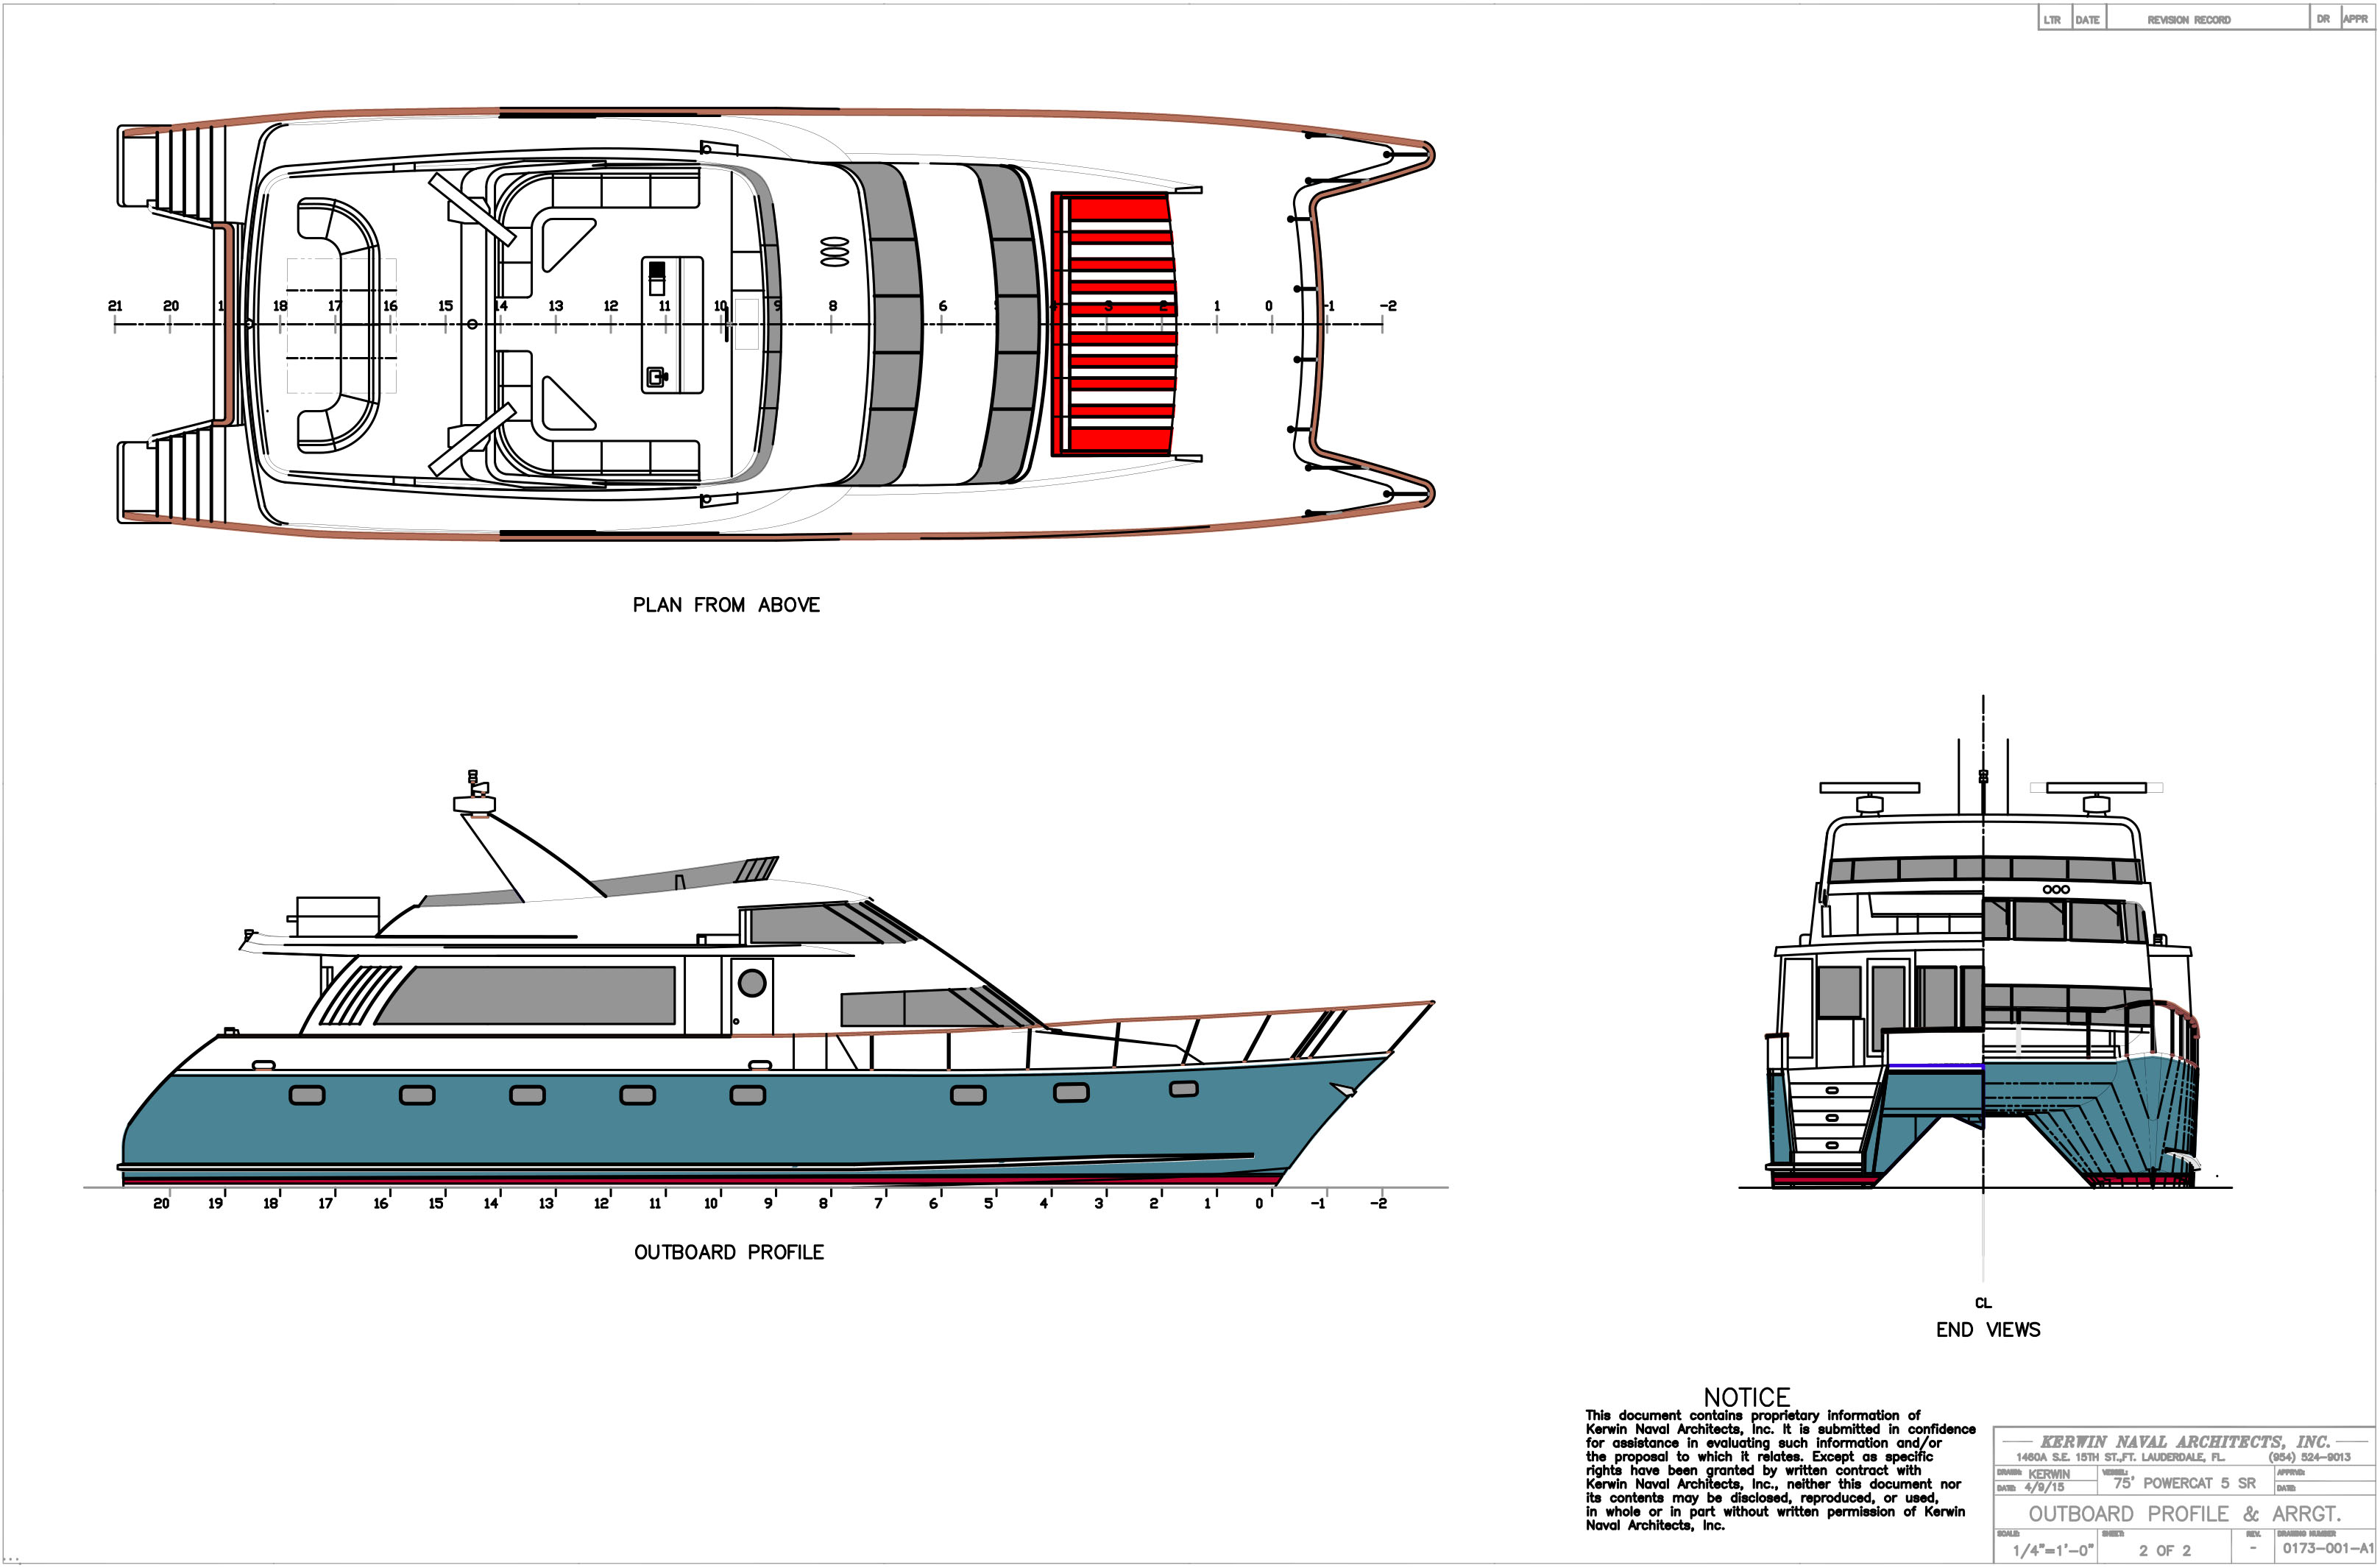 Another Style of 25 knot 5 Stateroom Catamaran